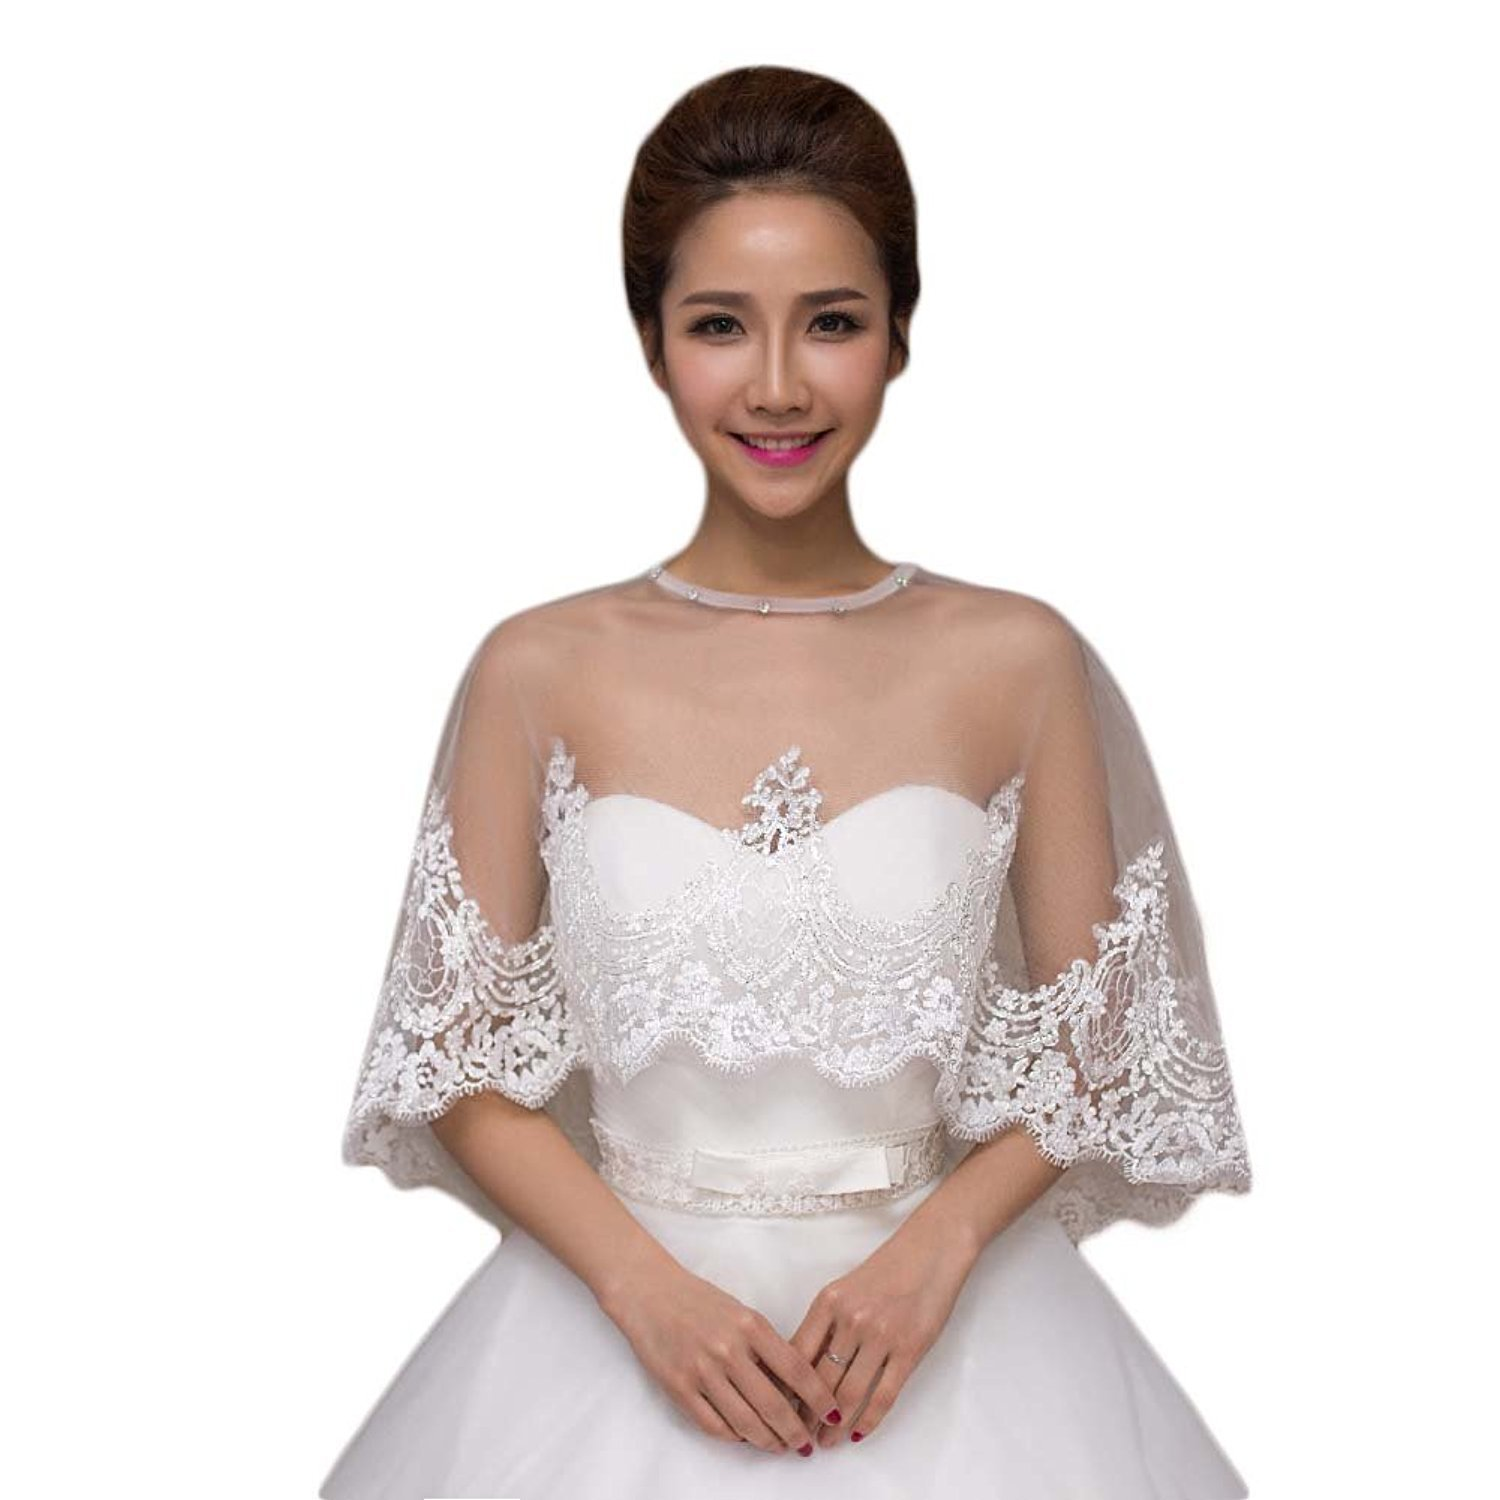 SlenyuBridal Women's 2018 New Wedding Jackets Lace Bridal Bolero Shawl with Beads (One Size, White Two)